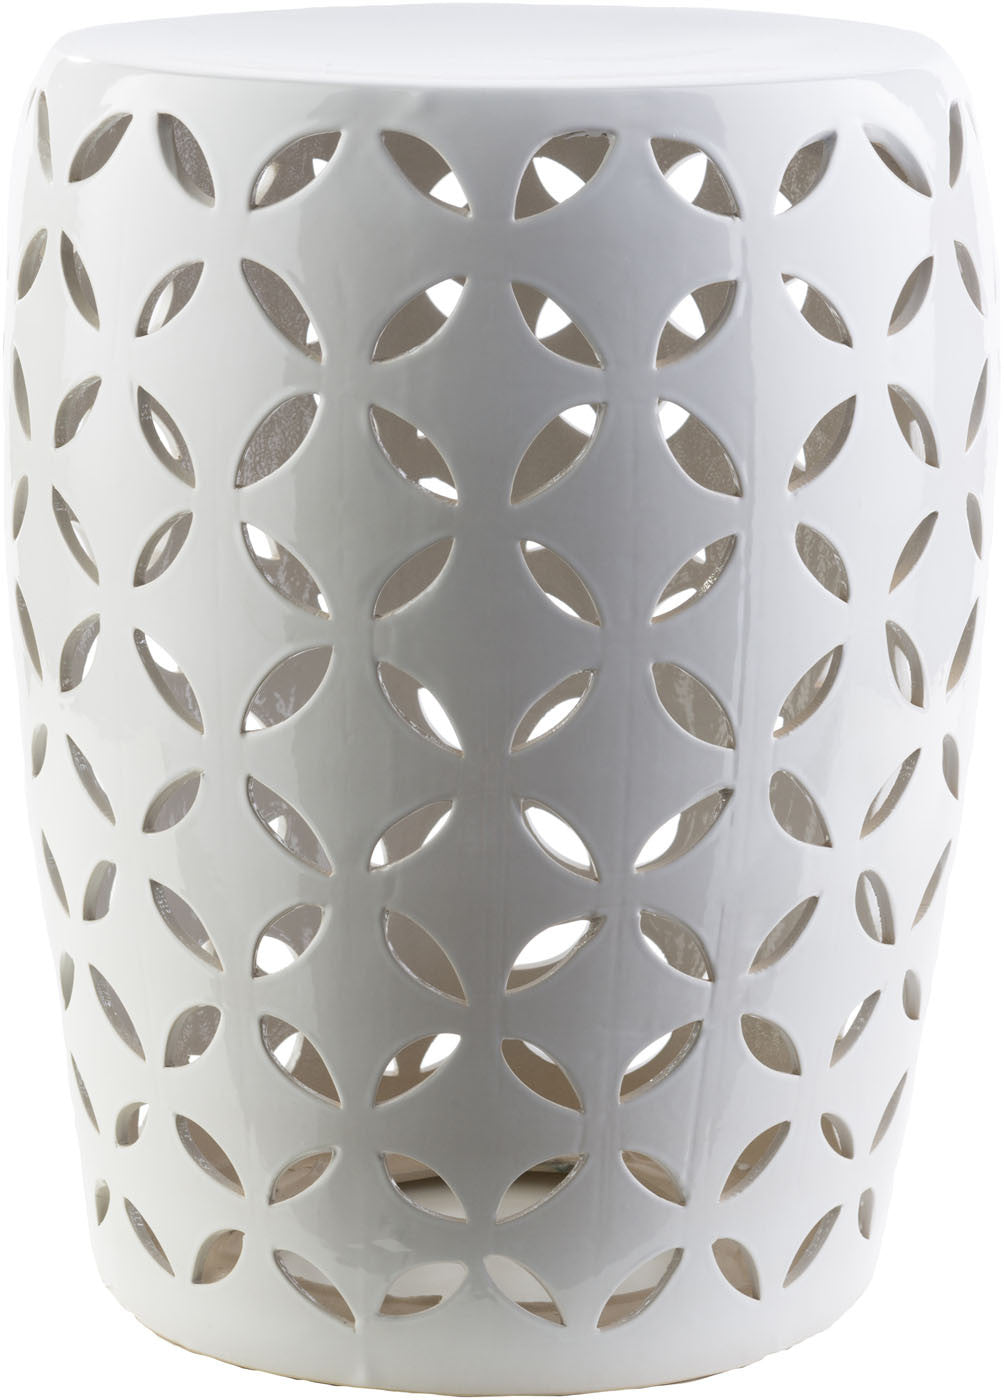 Chantilly Ceramic Stool - Ivory CHT762-M by Surya